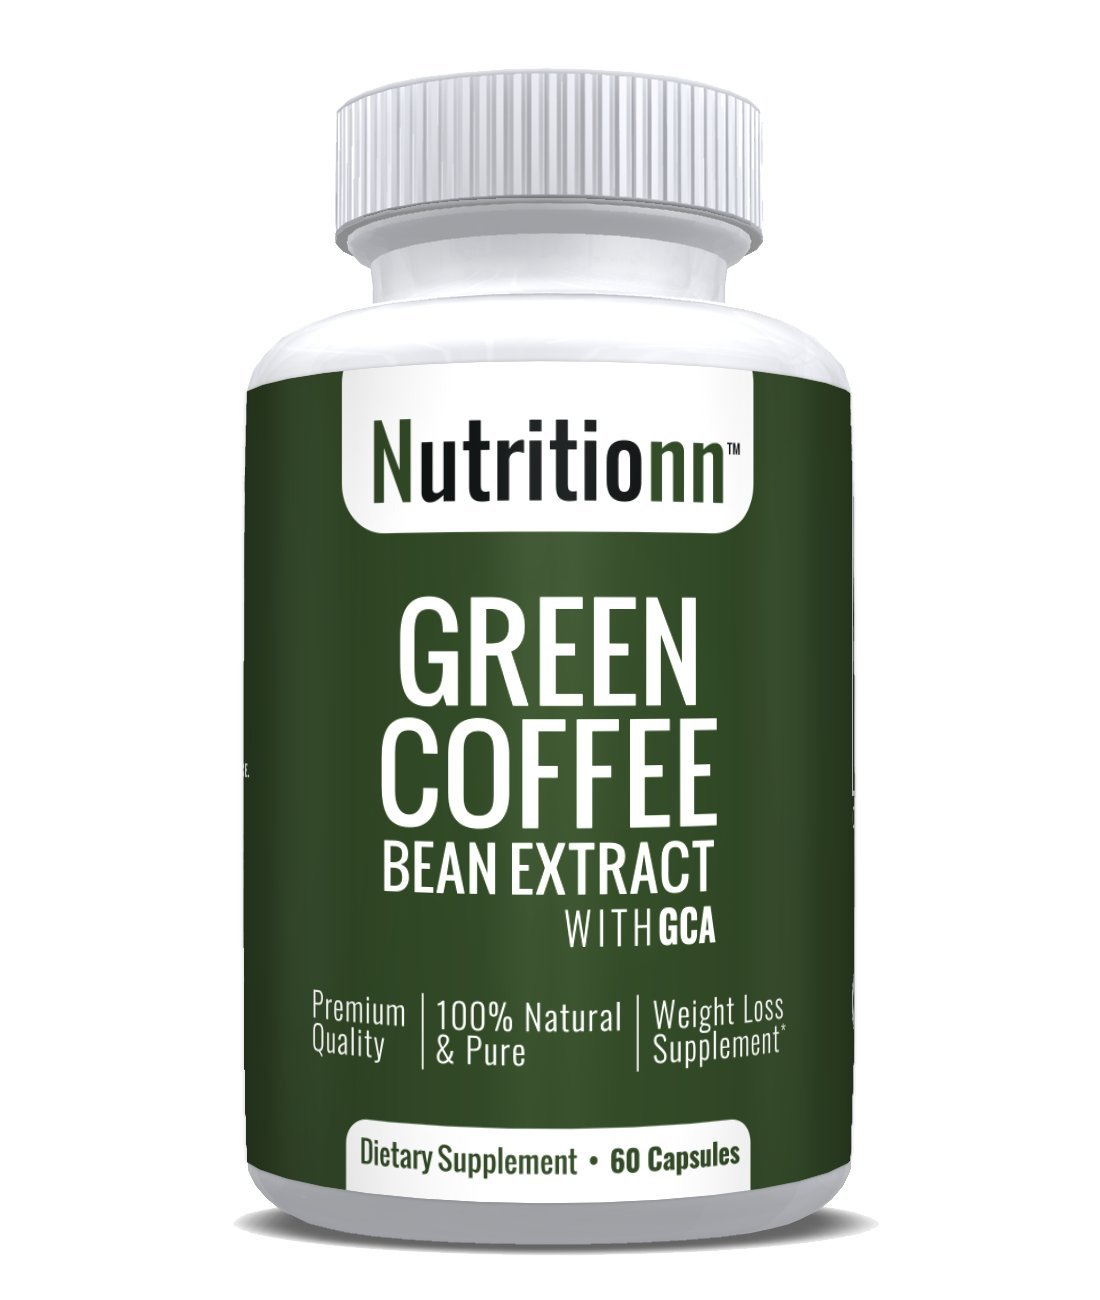 Green Coffee Bean Extract by Nutritionn - Premium Weight Loss Supplement - 60 Capsules